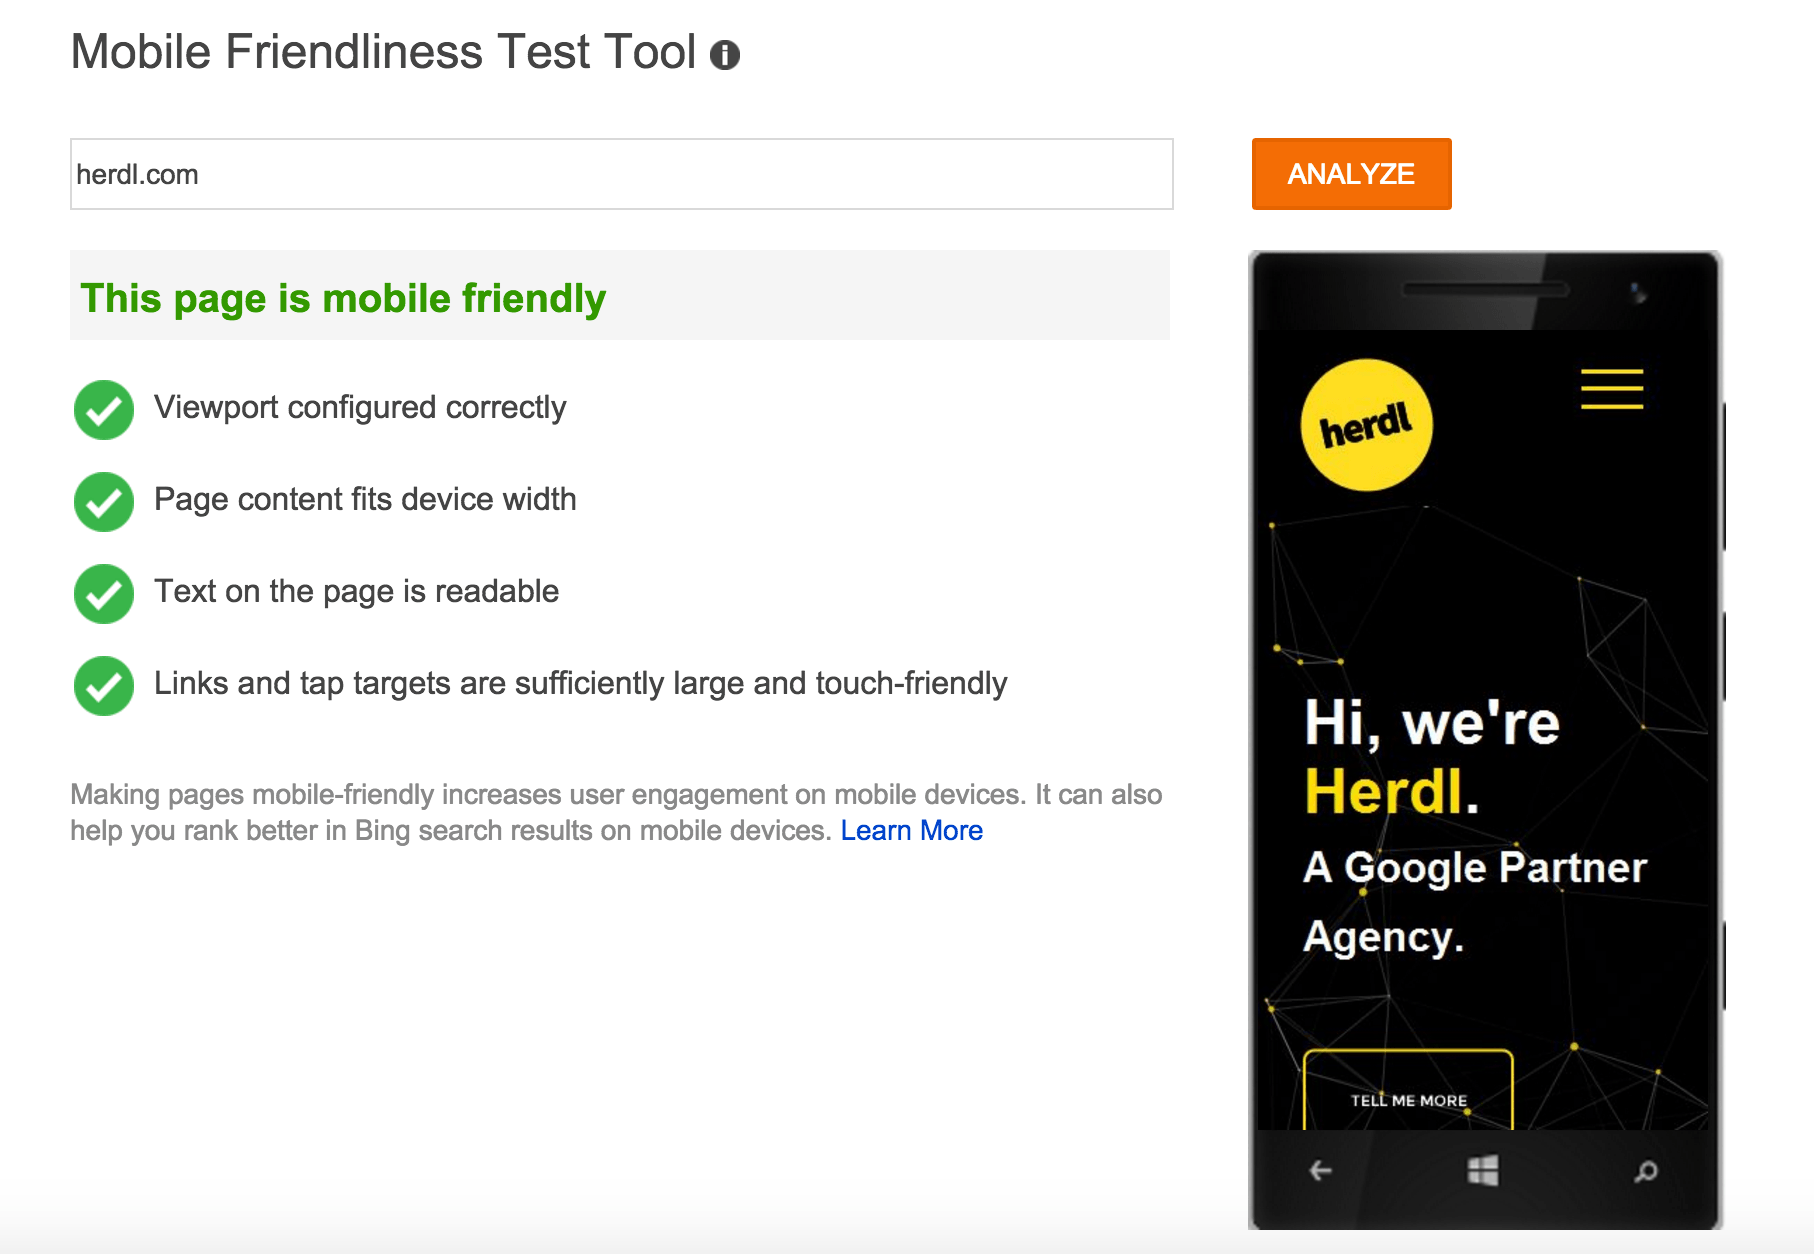 Mobile Friendliness Test Tool